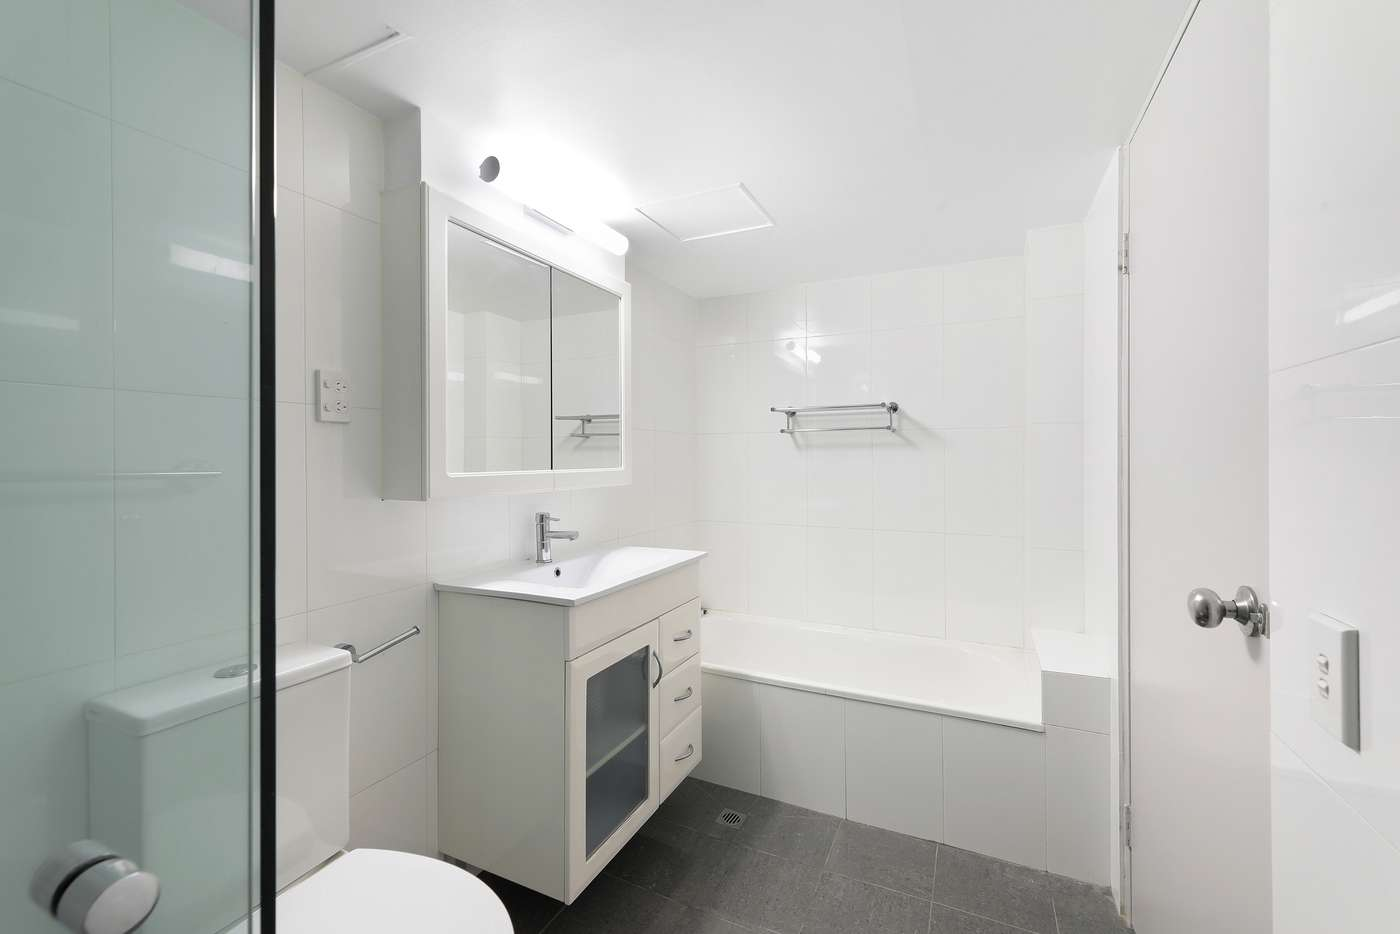 Fifth view of Homely apartment listing, 132/6-14 Oxford Street, Darlinghurst NSW 2010